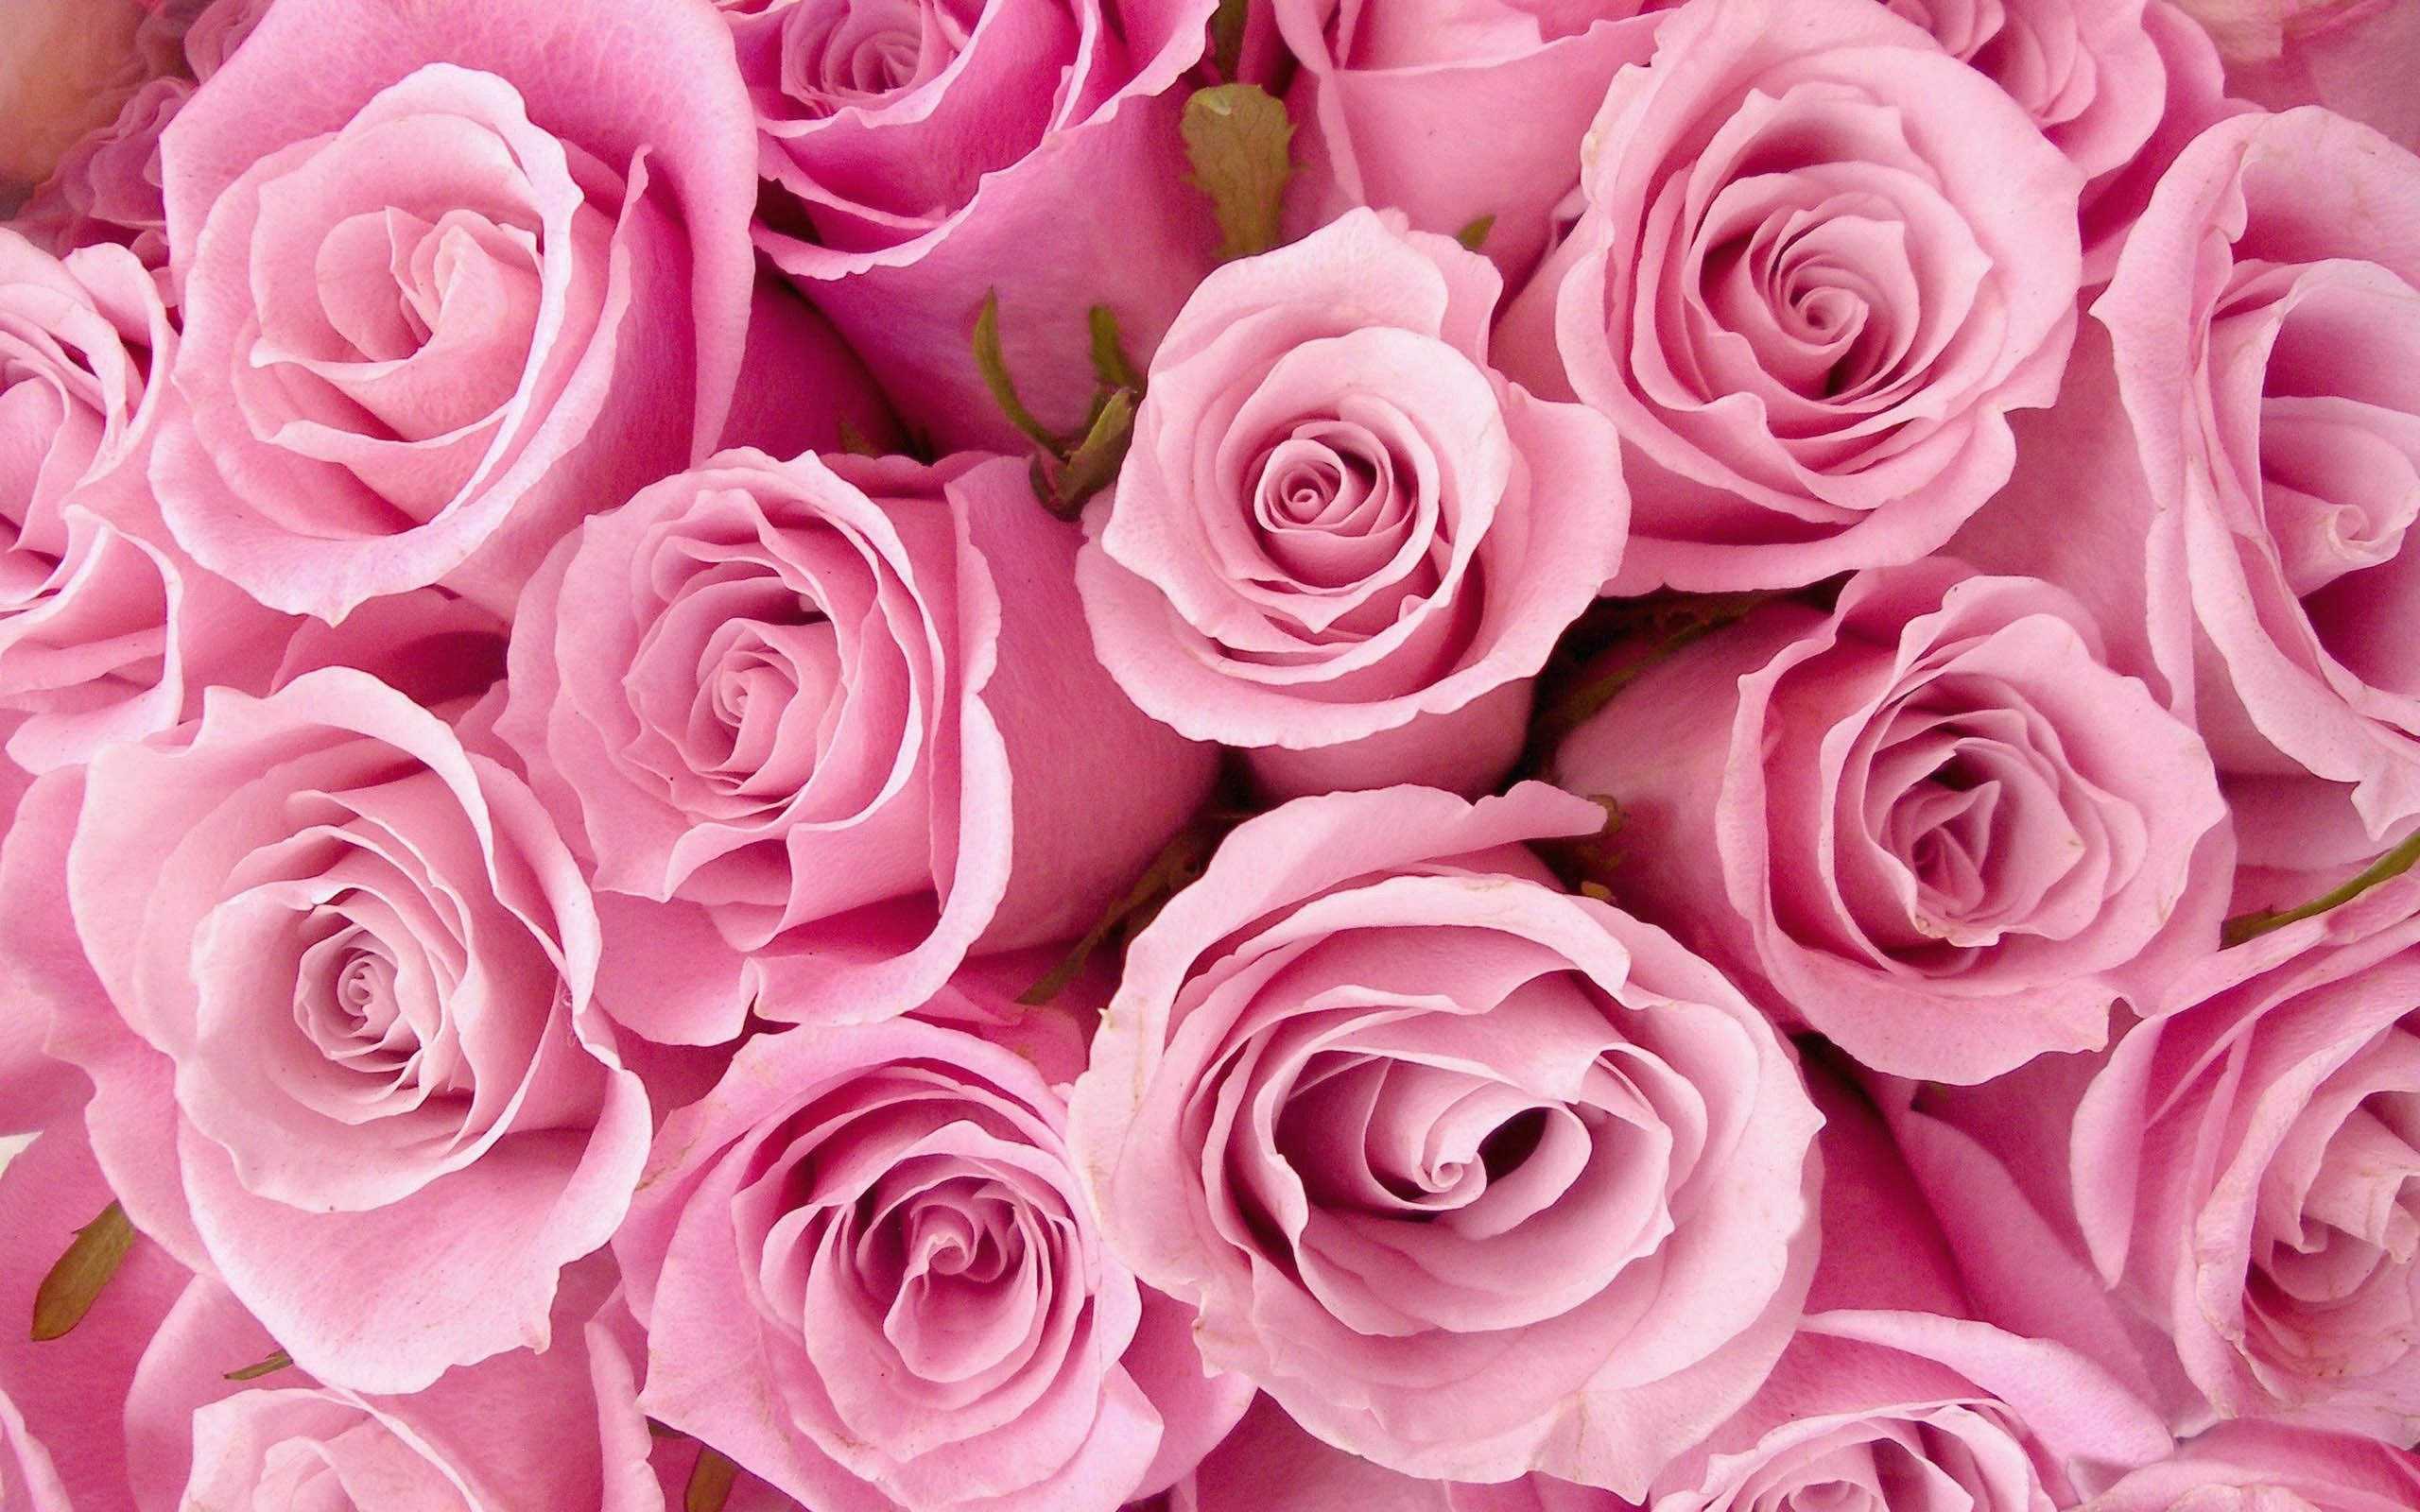 Rose Aesthetic Pc Wallpapers Top Free Rose Aesthetic Pc